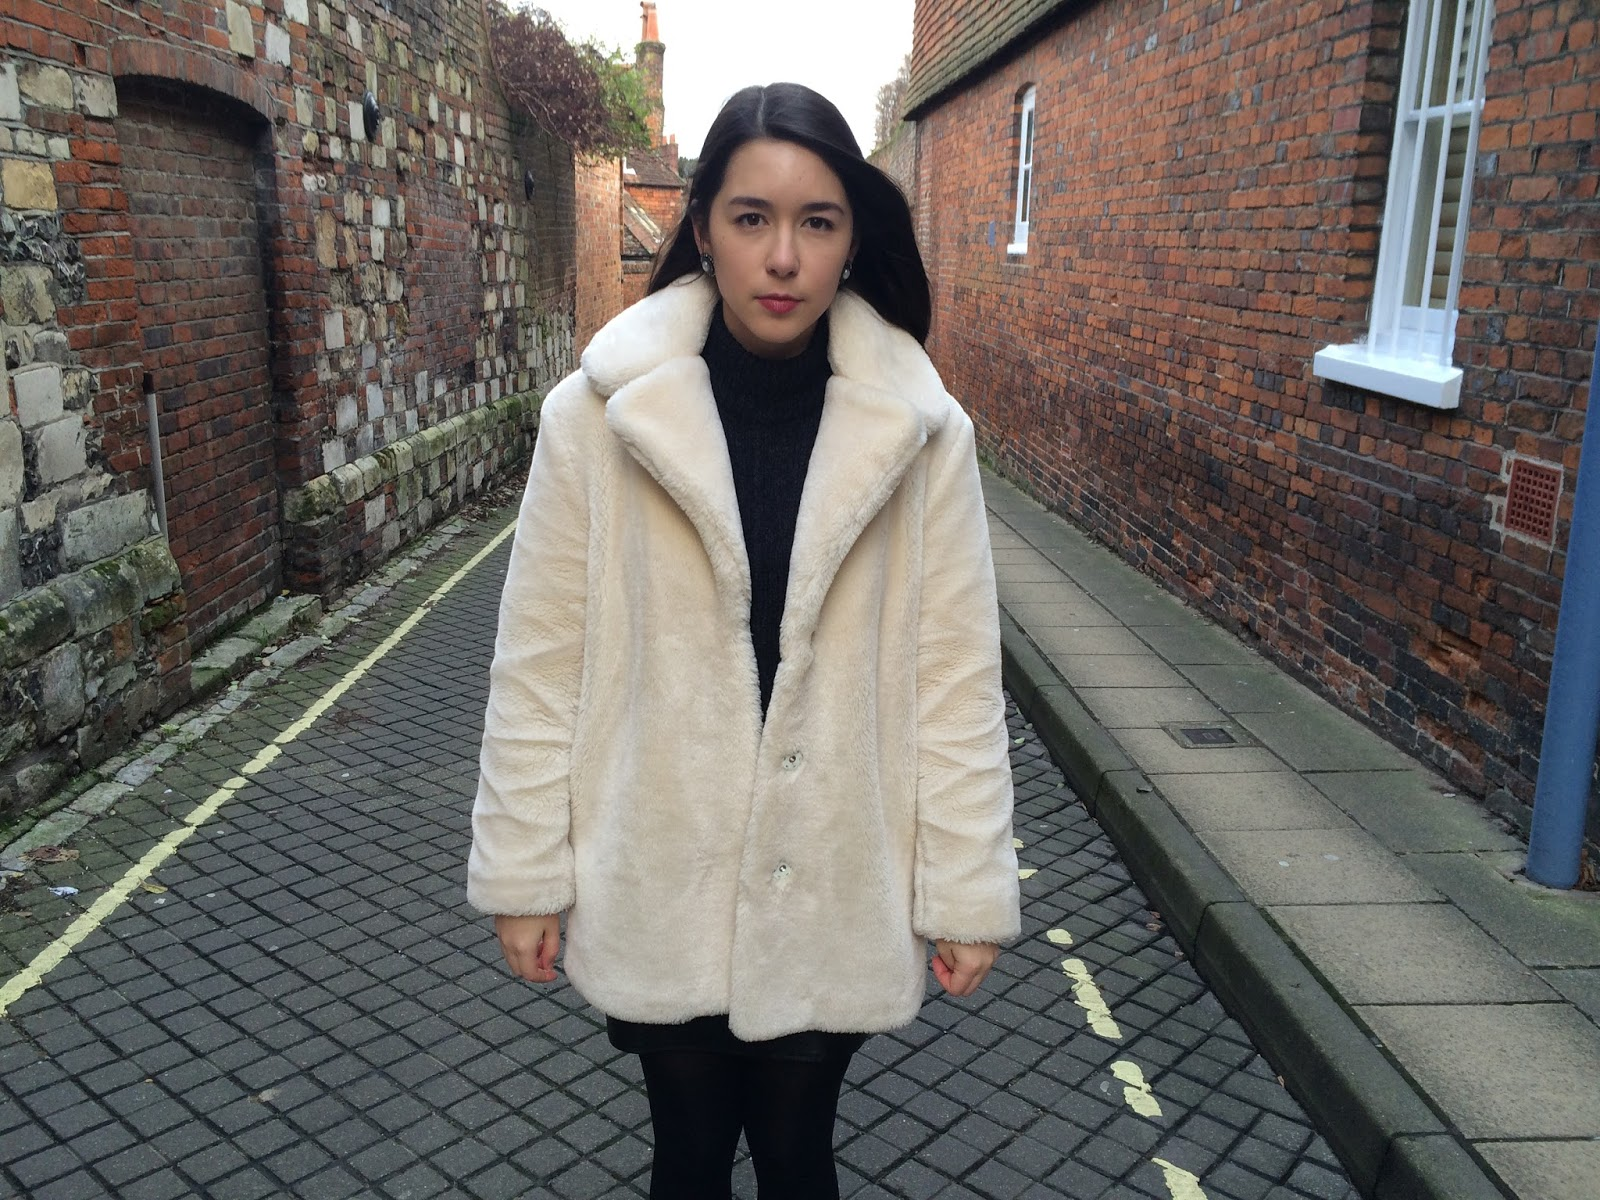 topshop coat, ootd, street style, look, outfit post, fashion blogger